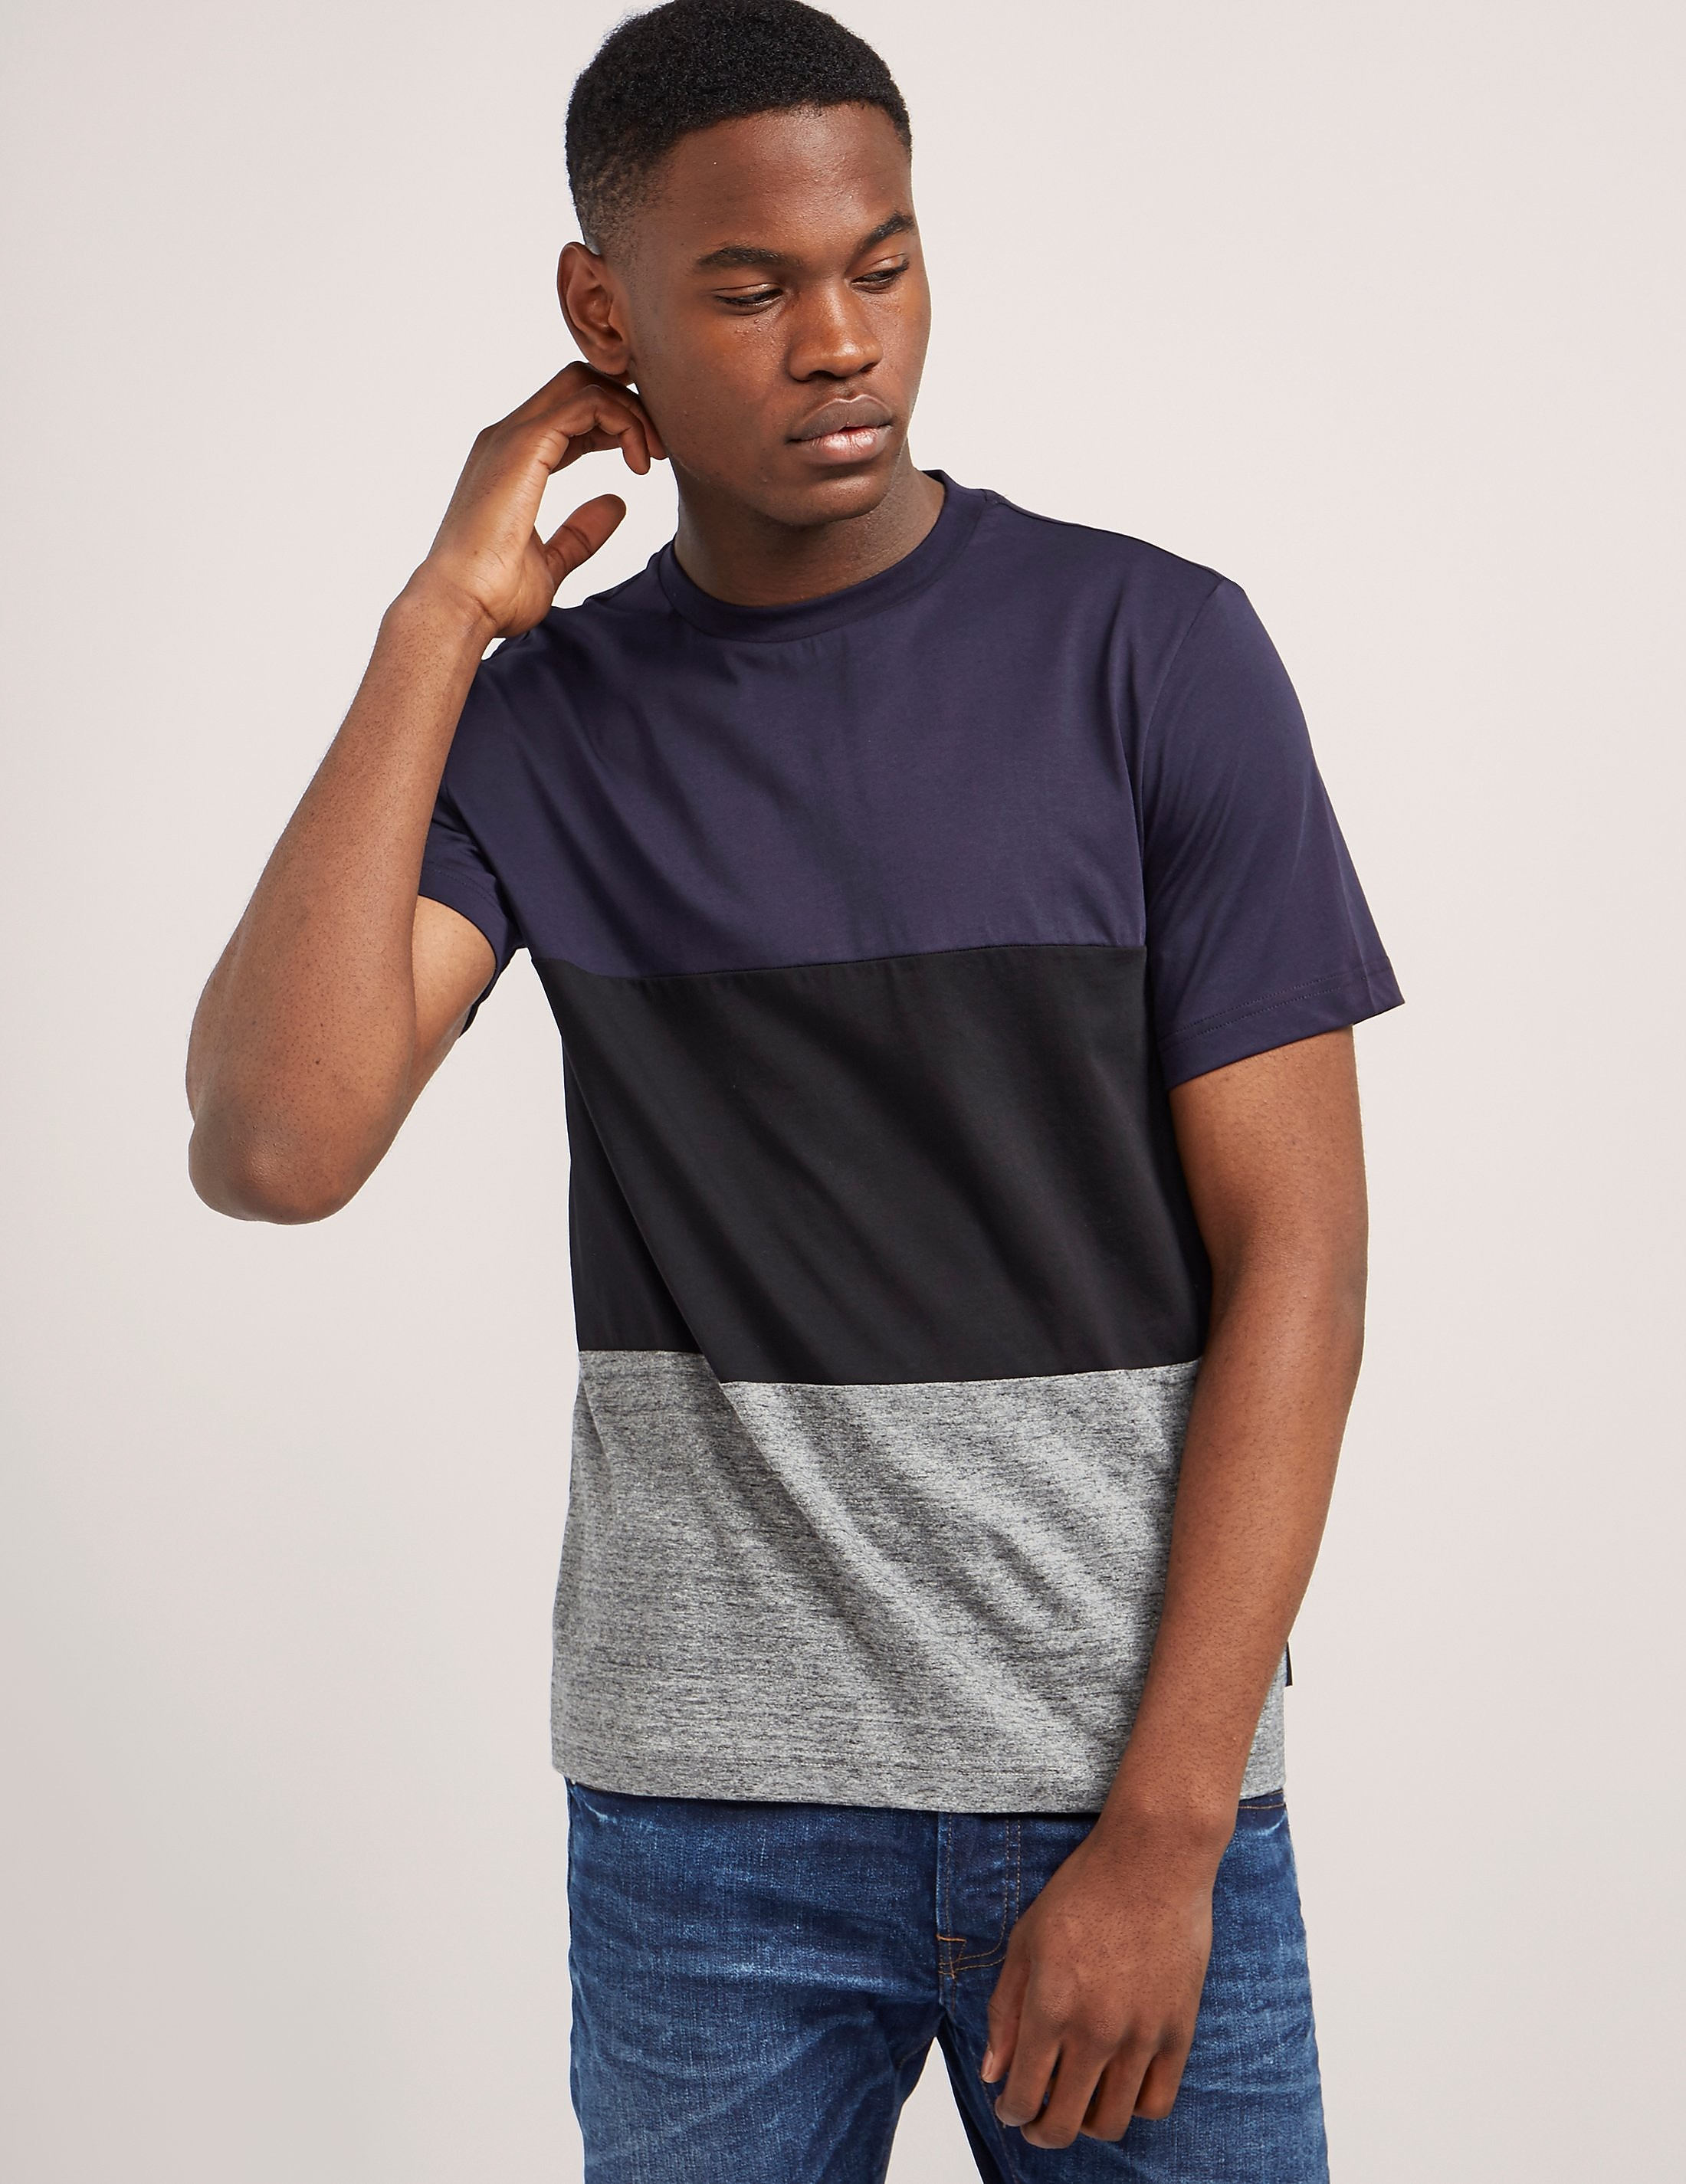 Paul Smith Colour Block Short Sleeve T-Shirt